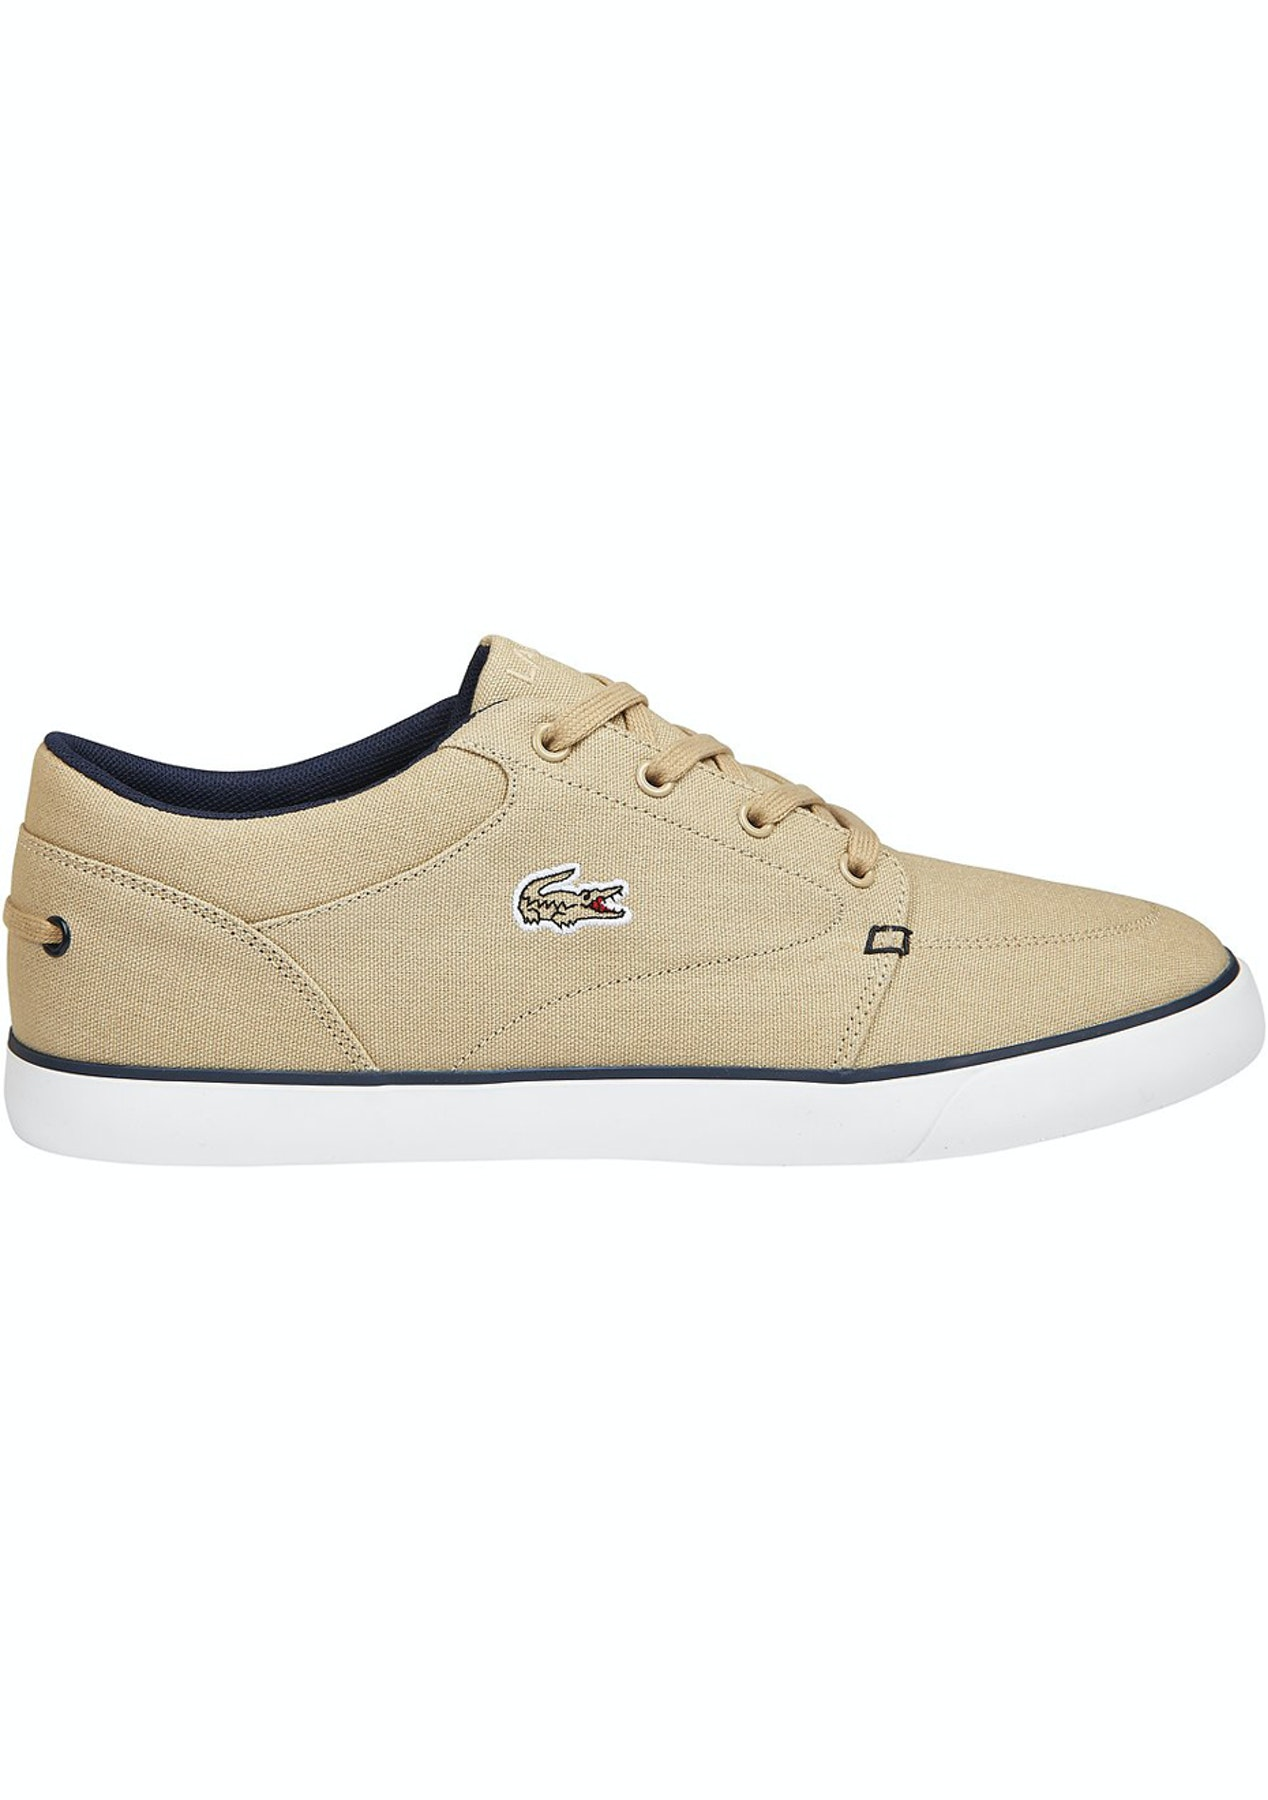 913d359c1a61 Lacoste - Mens Bayliss 316 3 Natural Navy - Mens Outlet Sale from  5 -  Onceit